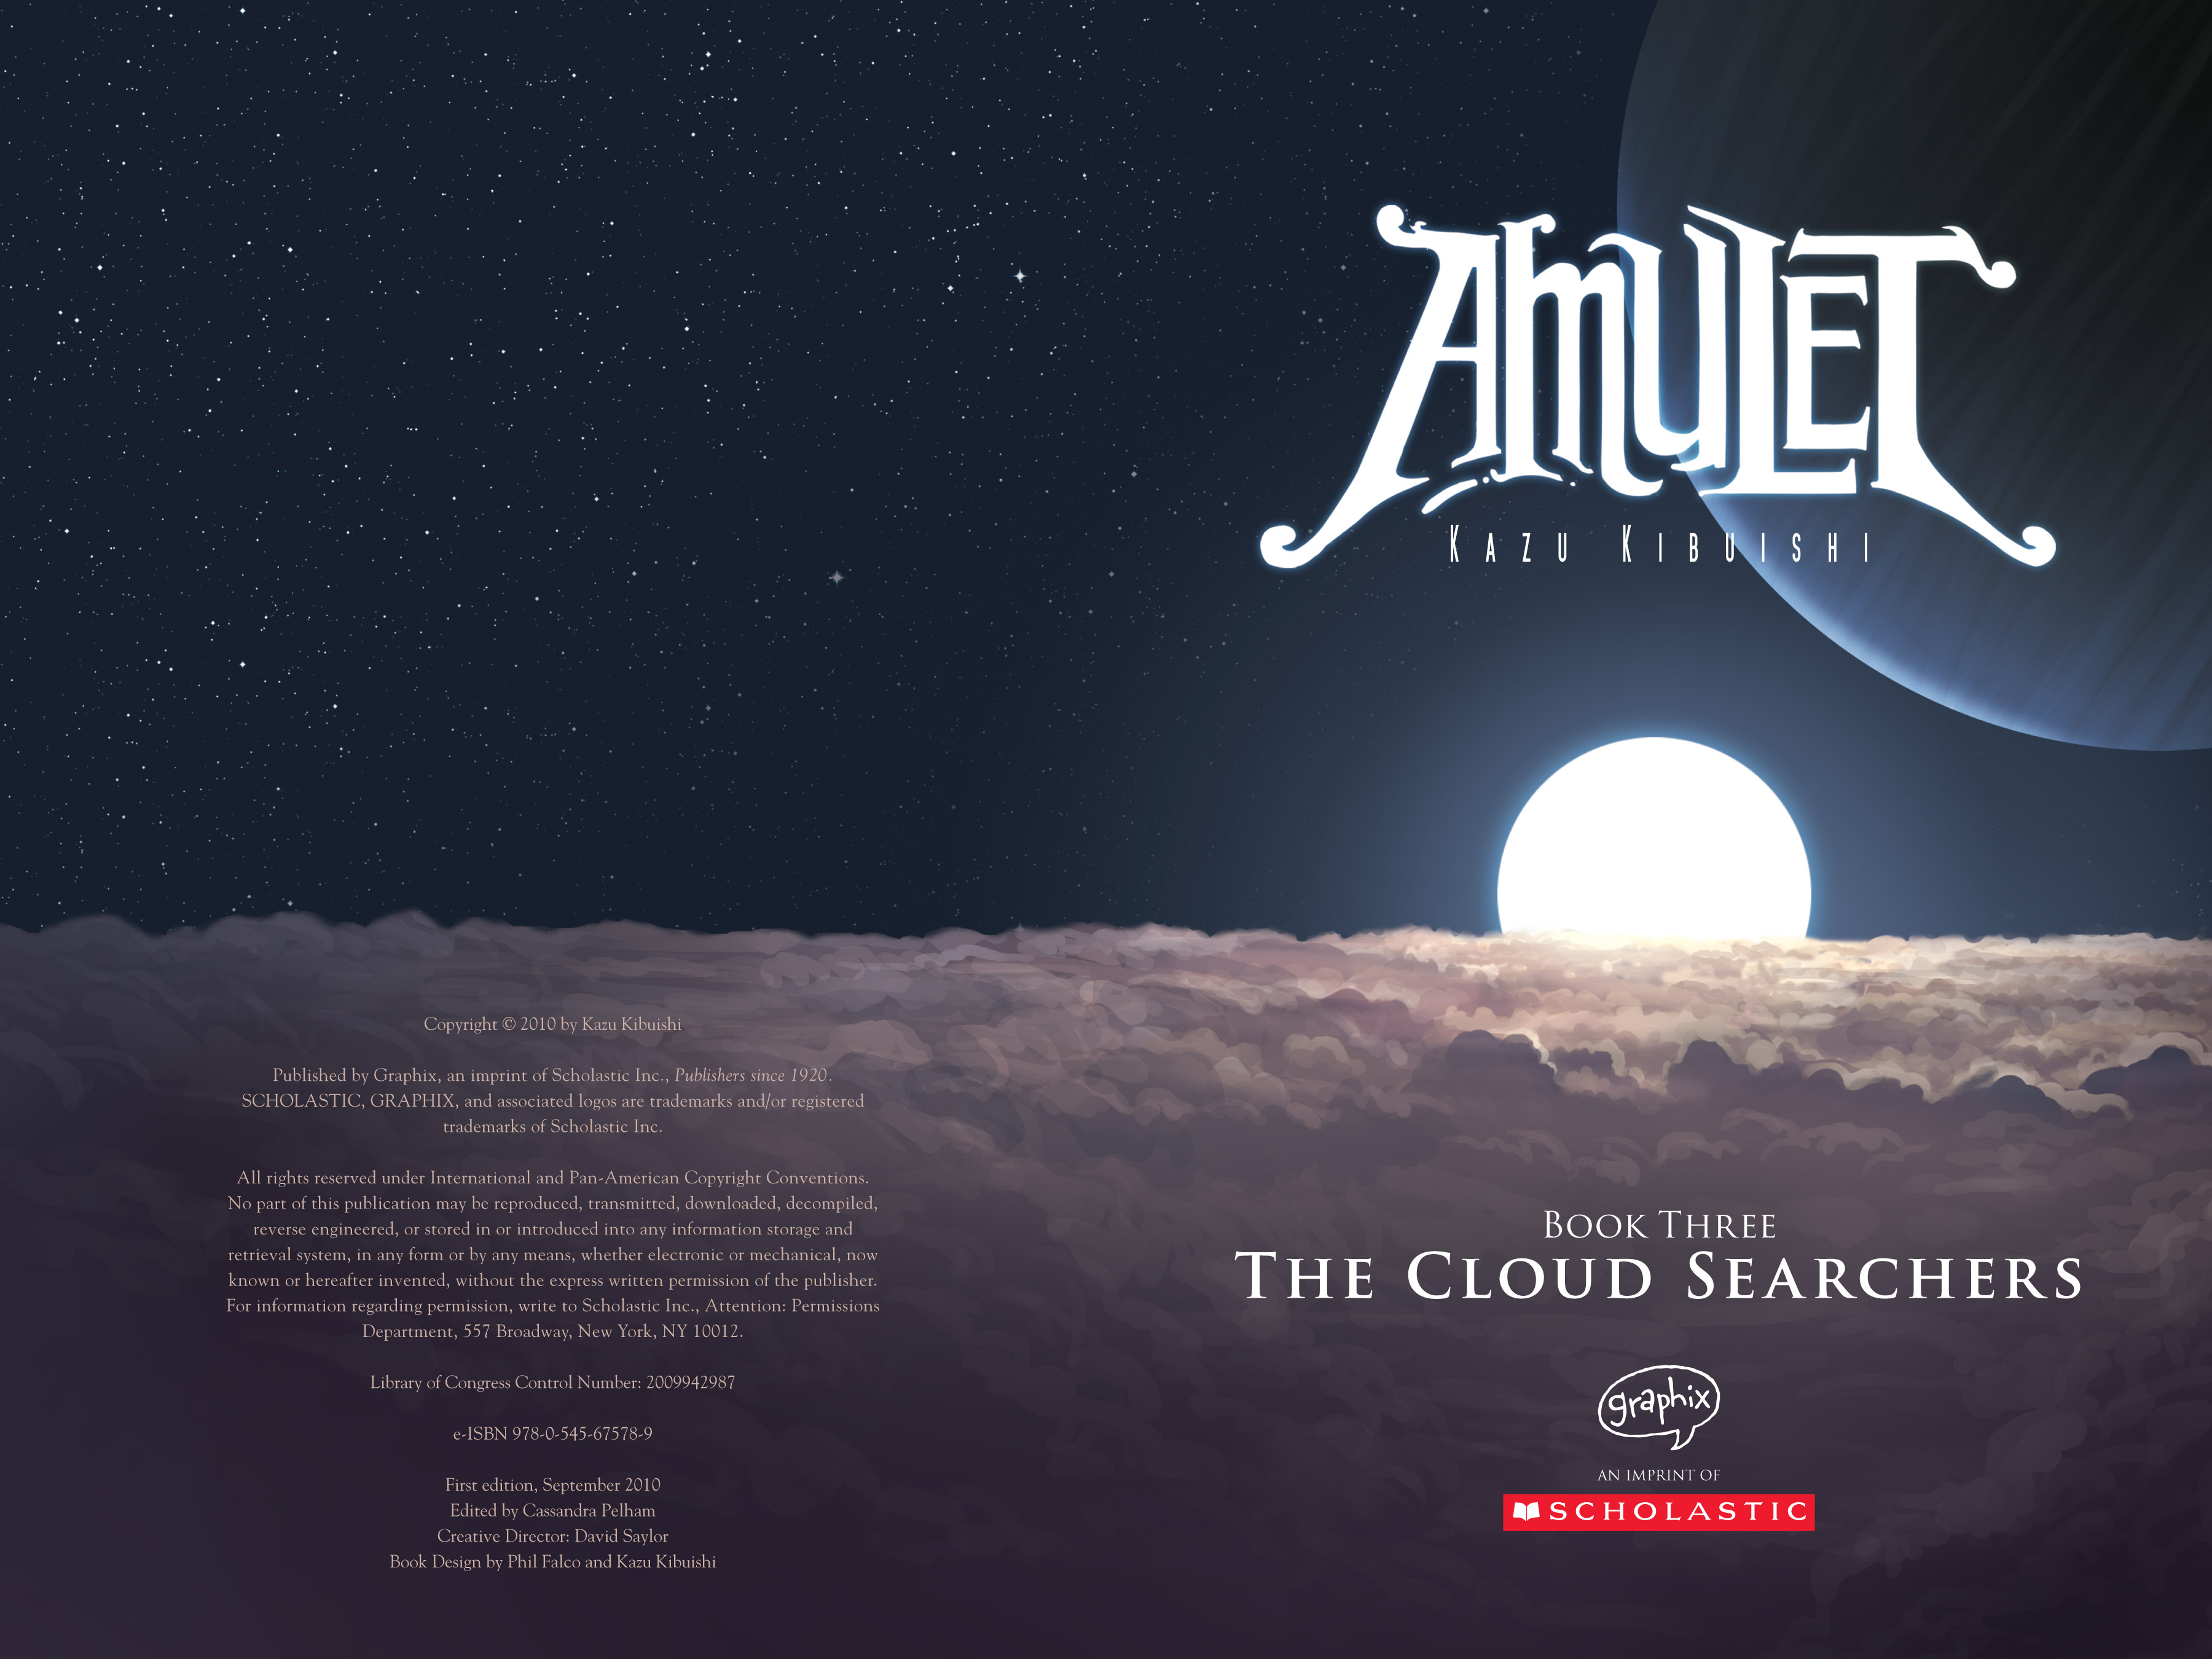 Read online Amulet comic -  Issue #3 - 2